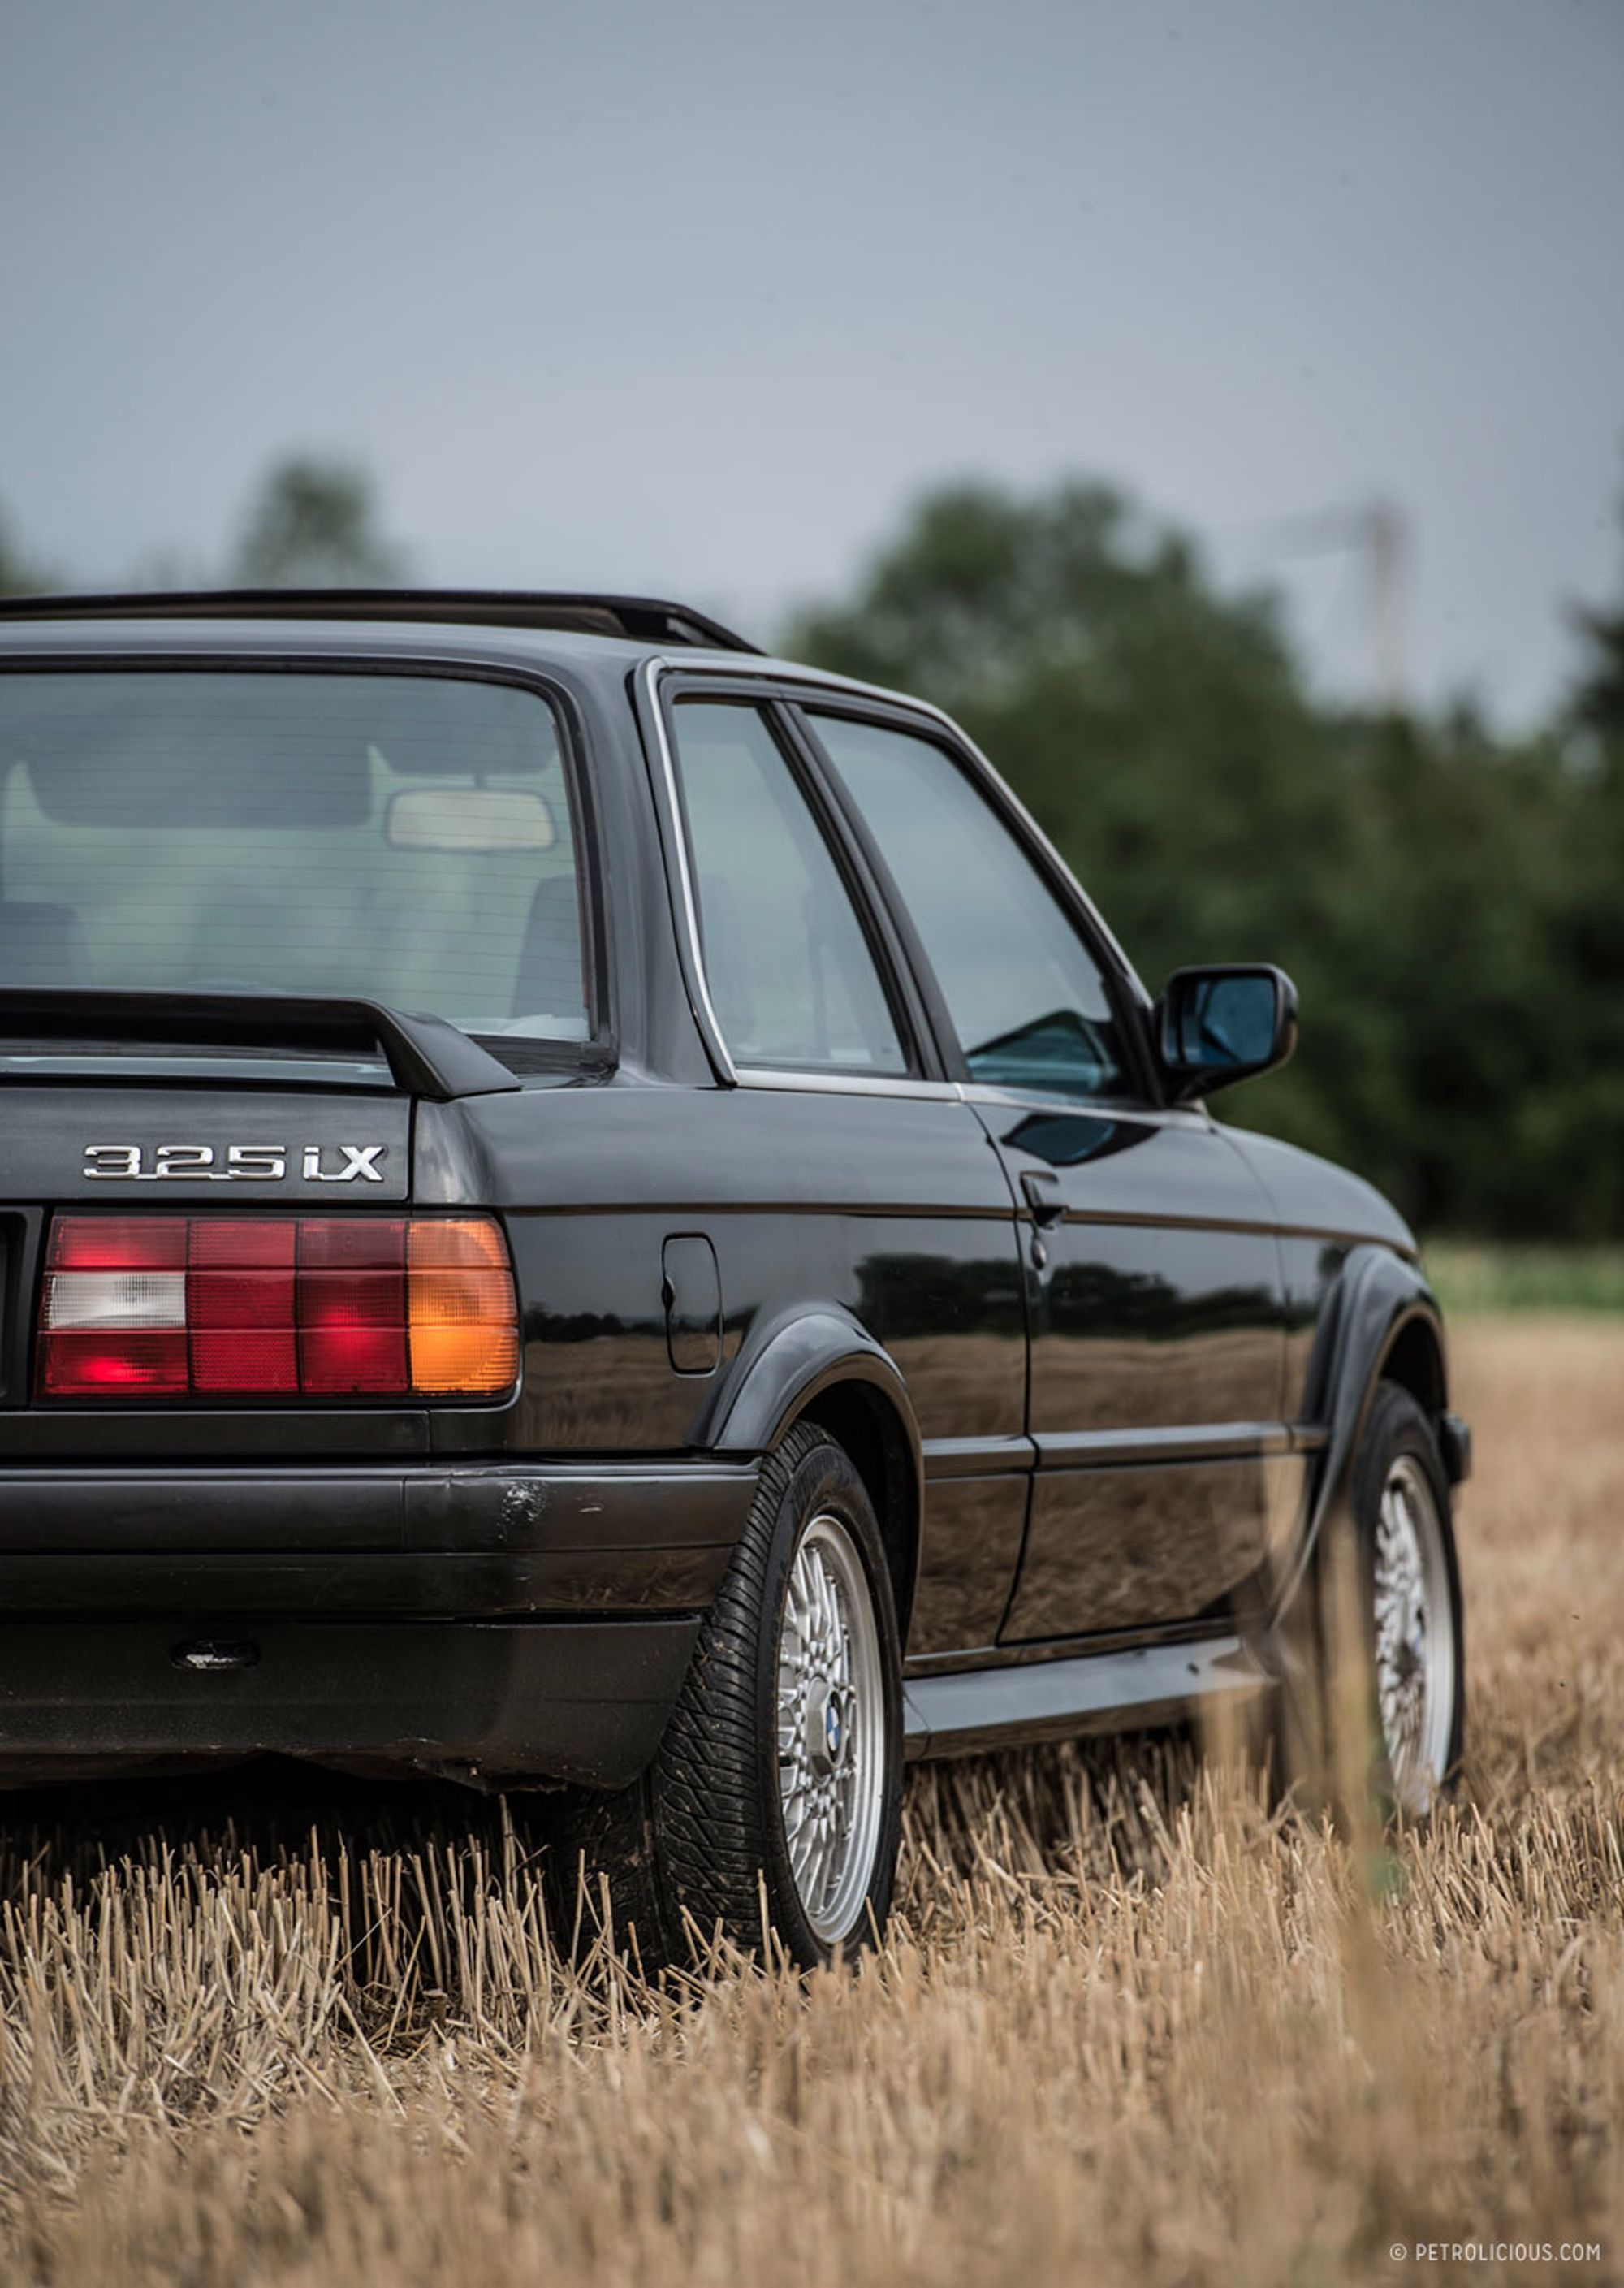 The Bmw 325ix Is The Coolest E30 Of Them All Bmw Classic Cars